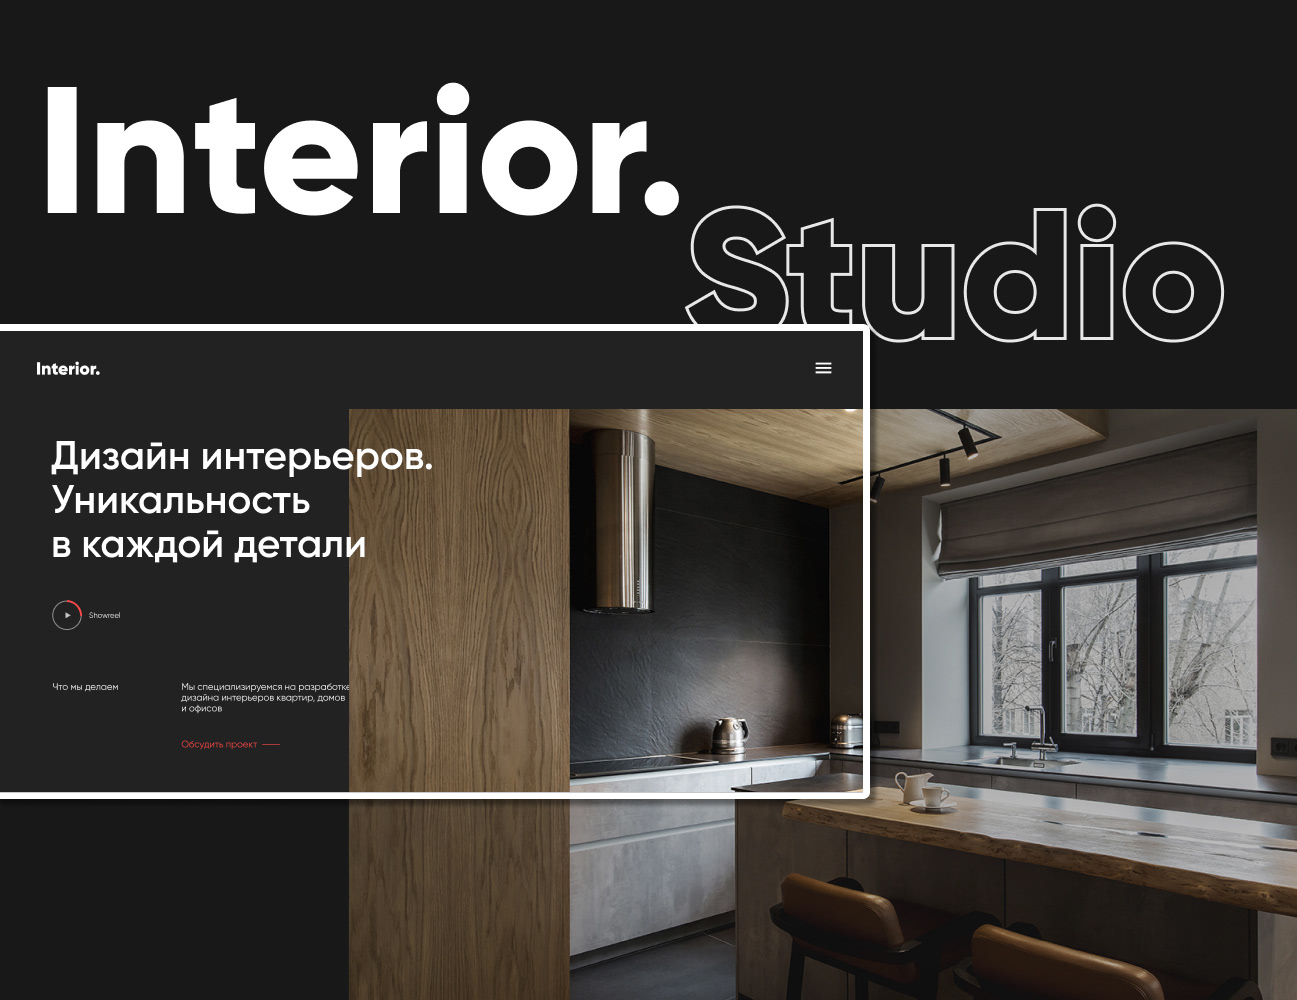 Website Interior Projects Photos Videos Logos Illustrations And Branding On Behance